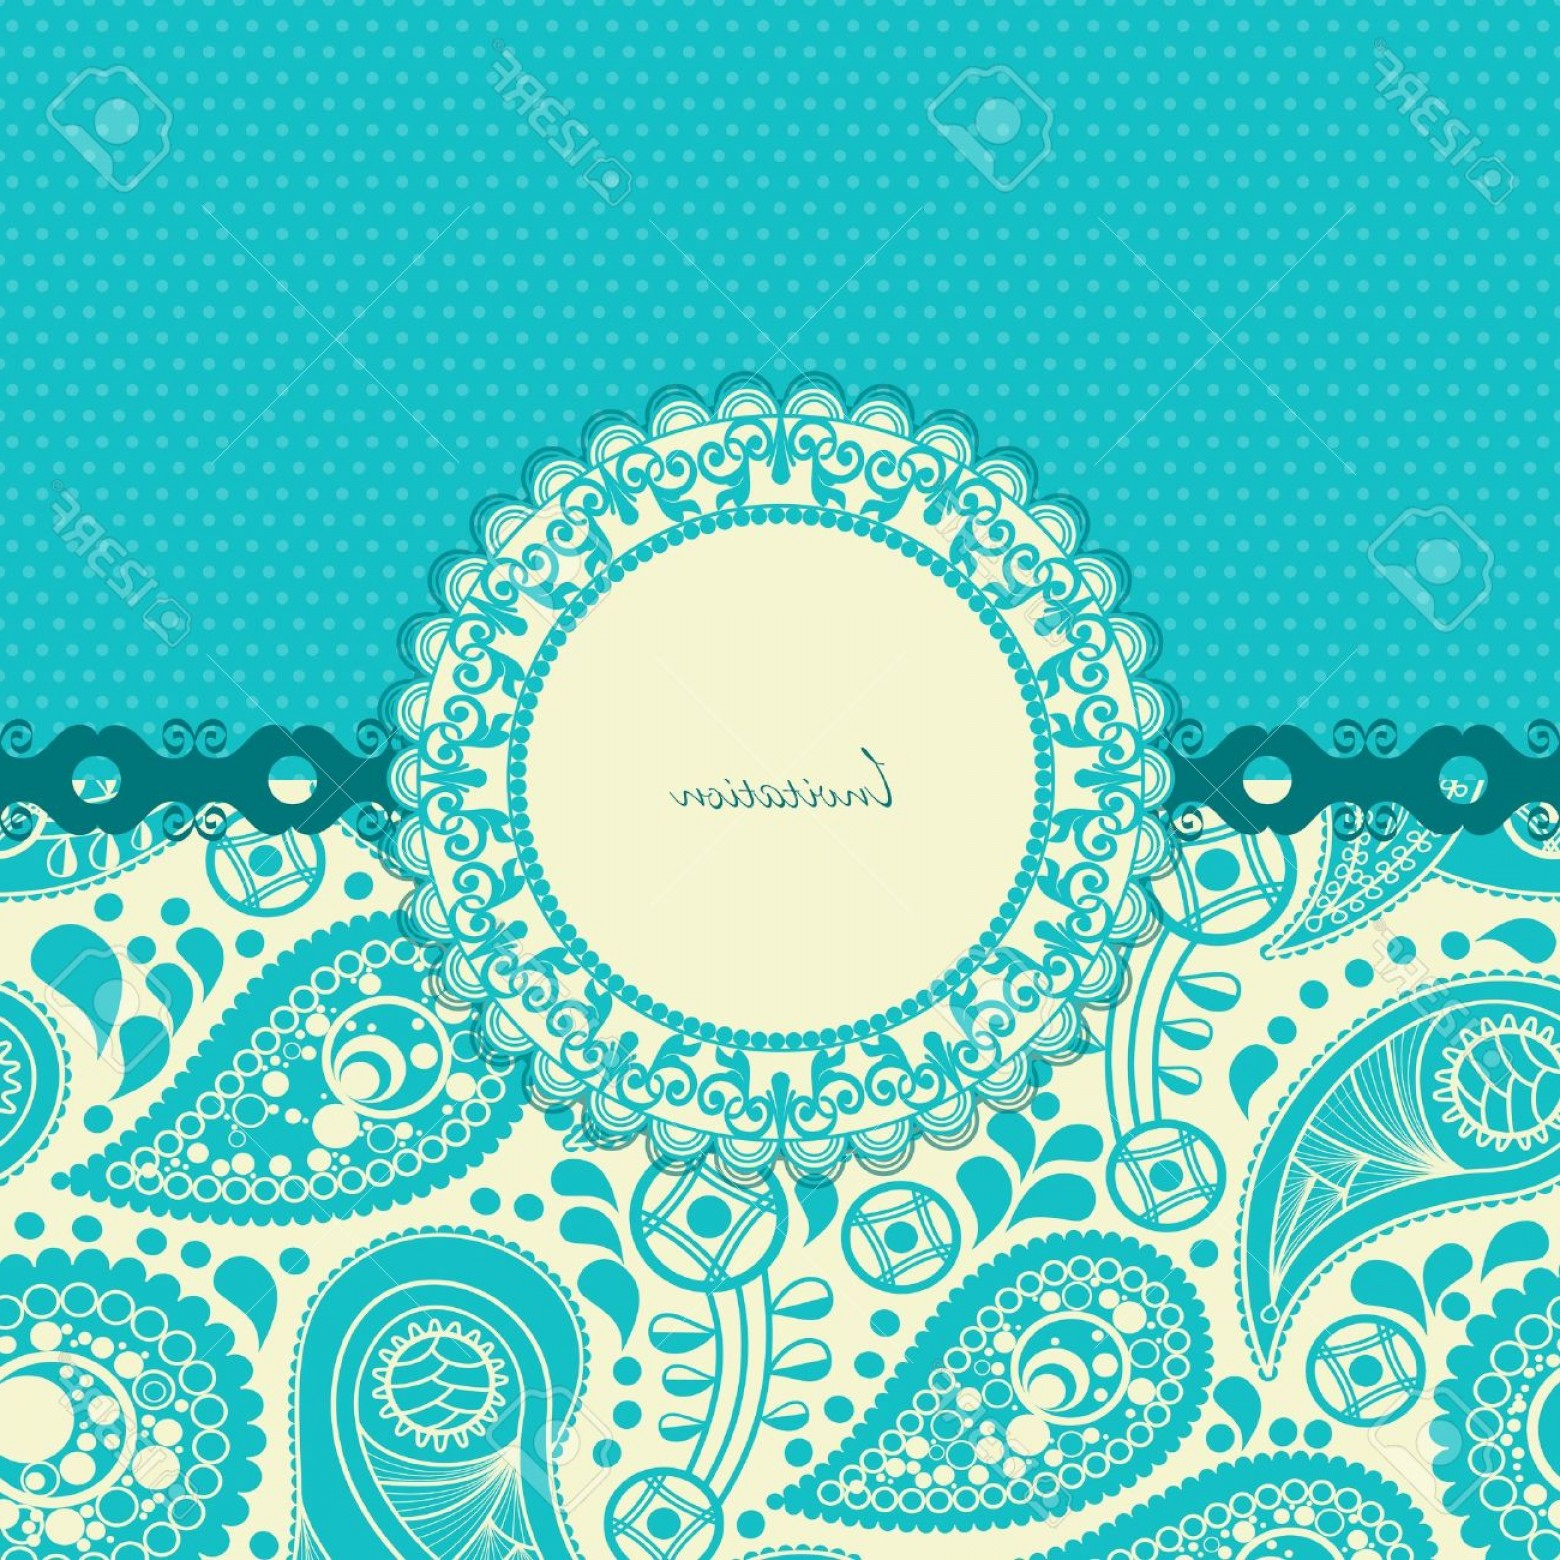 Turquoise Flower Vector: Photopaisley Flower Gift Card In Trendy Turquoise